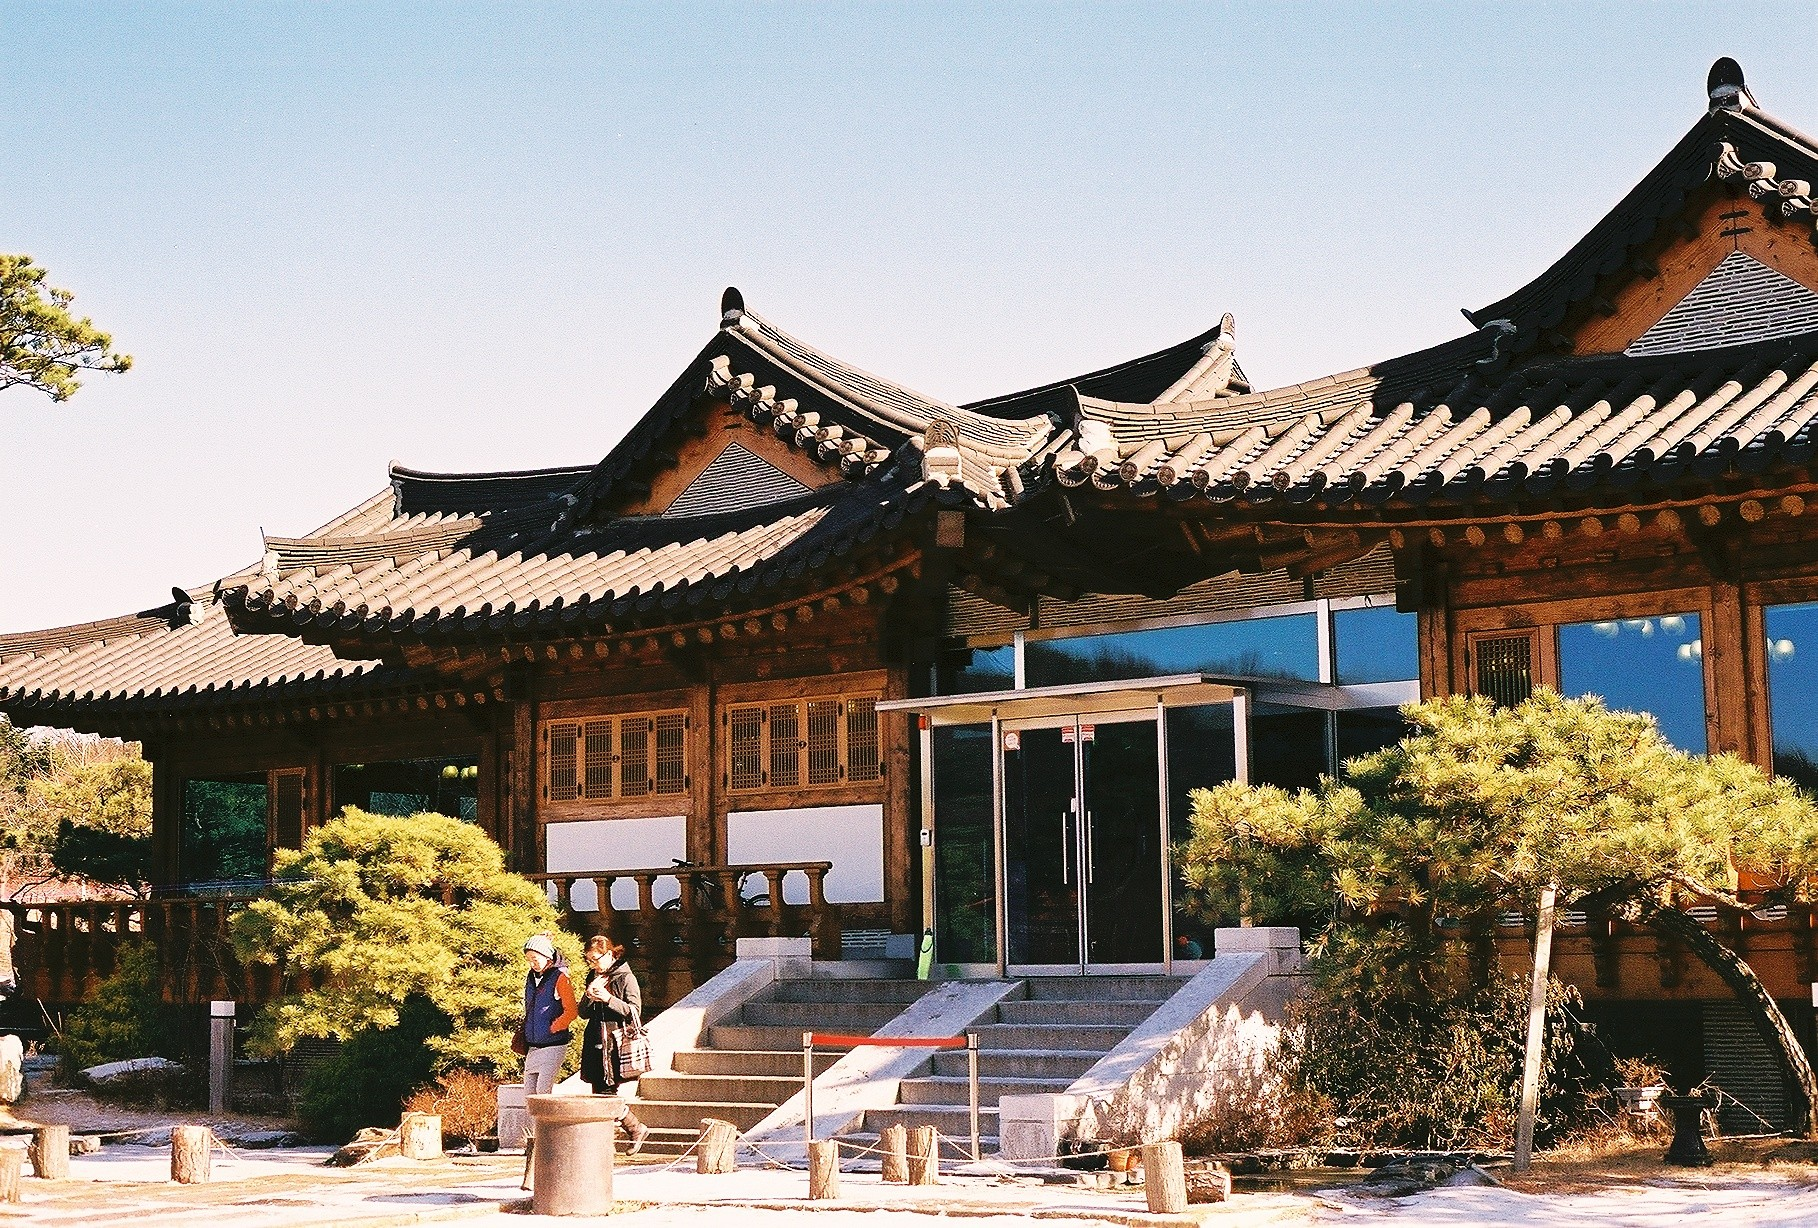 Hanok-style house at Ilsan, Gyeonggi-do, South Korea